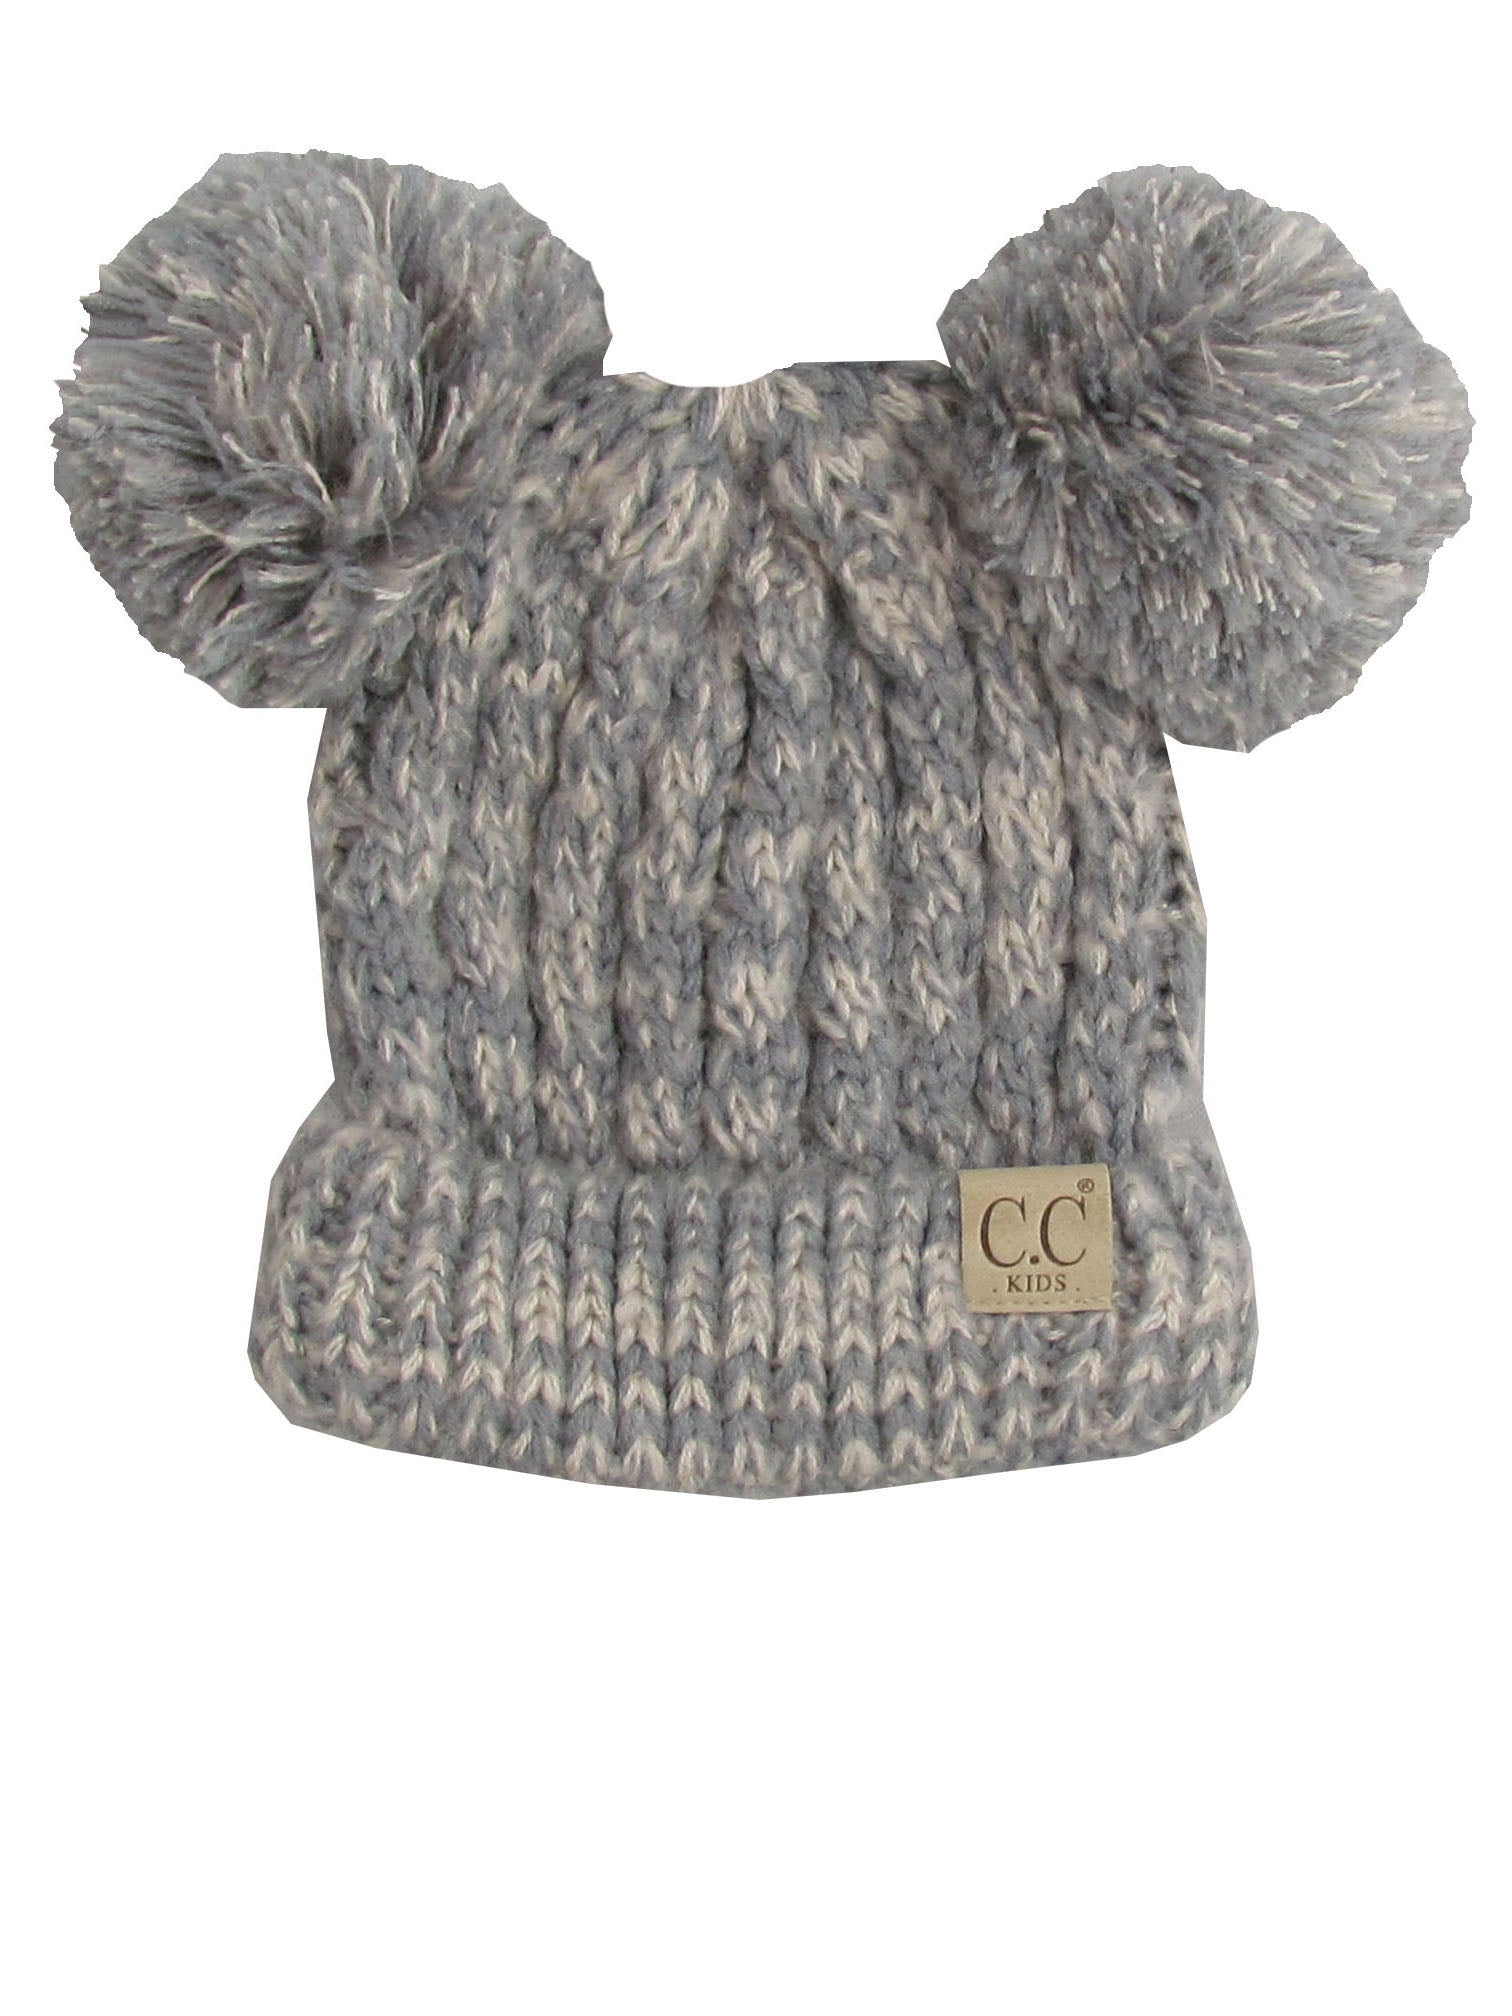 C.C Kid-23 Grey Youth Beanie